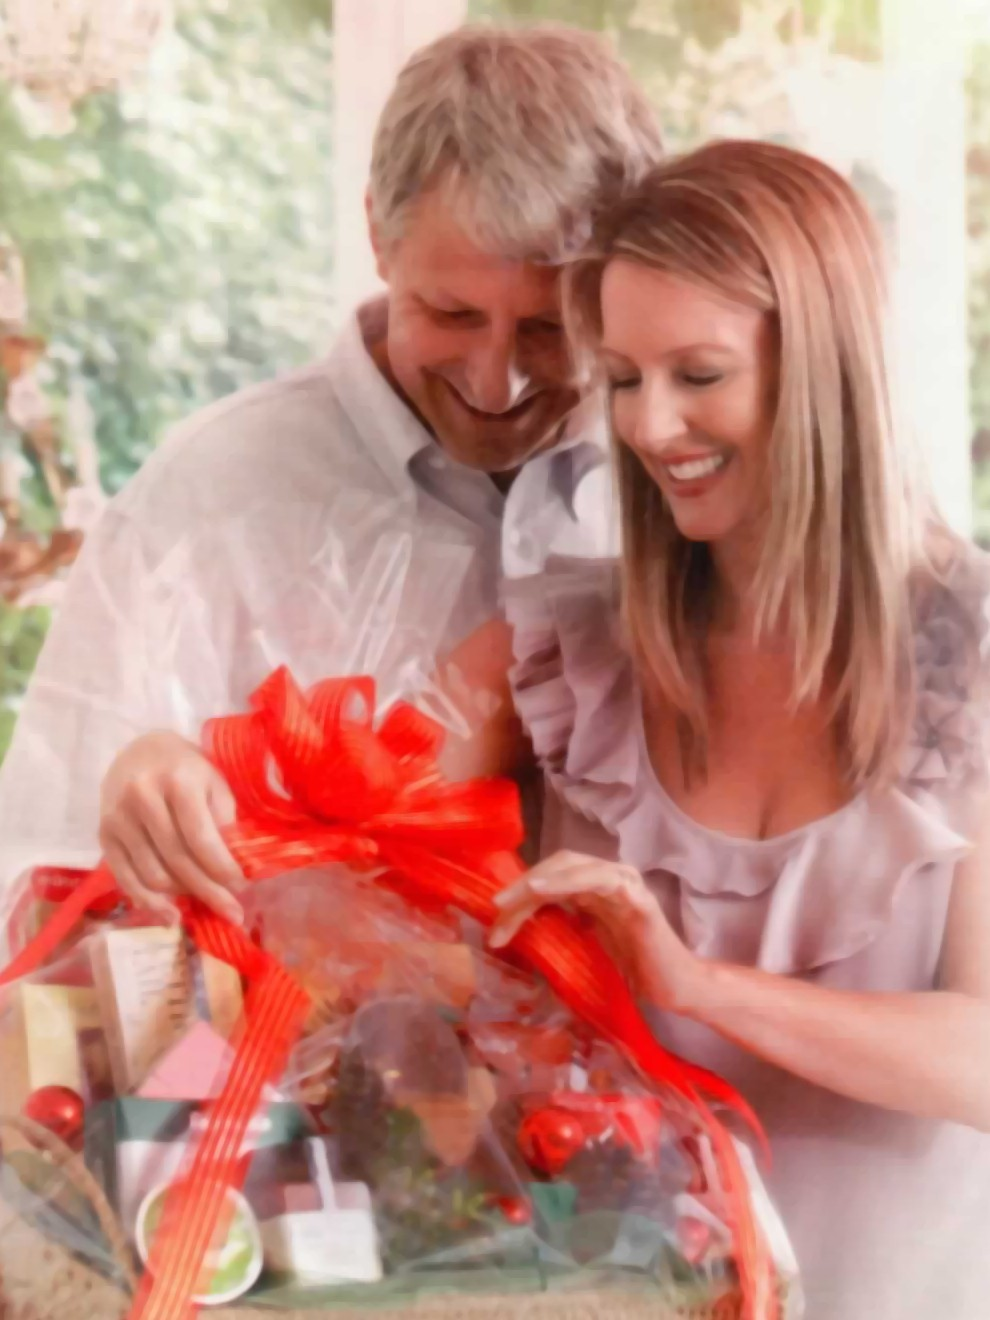 hampers-for-gold-coast-delivery-from-local-gold-coast-florists.jpg